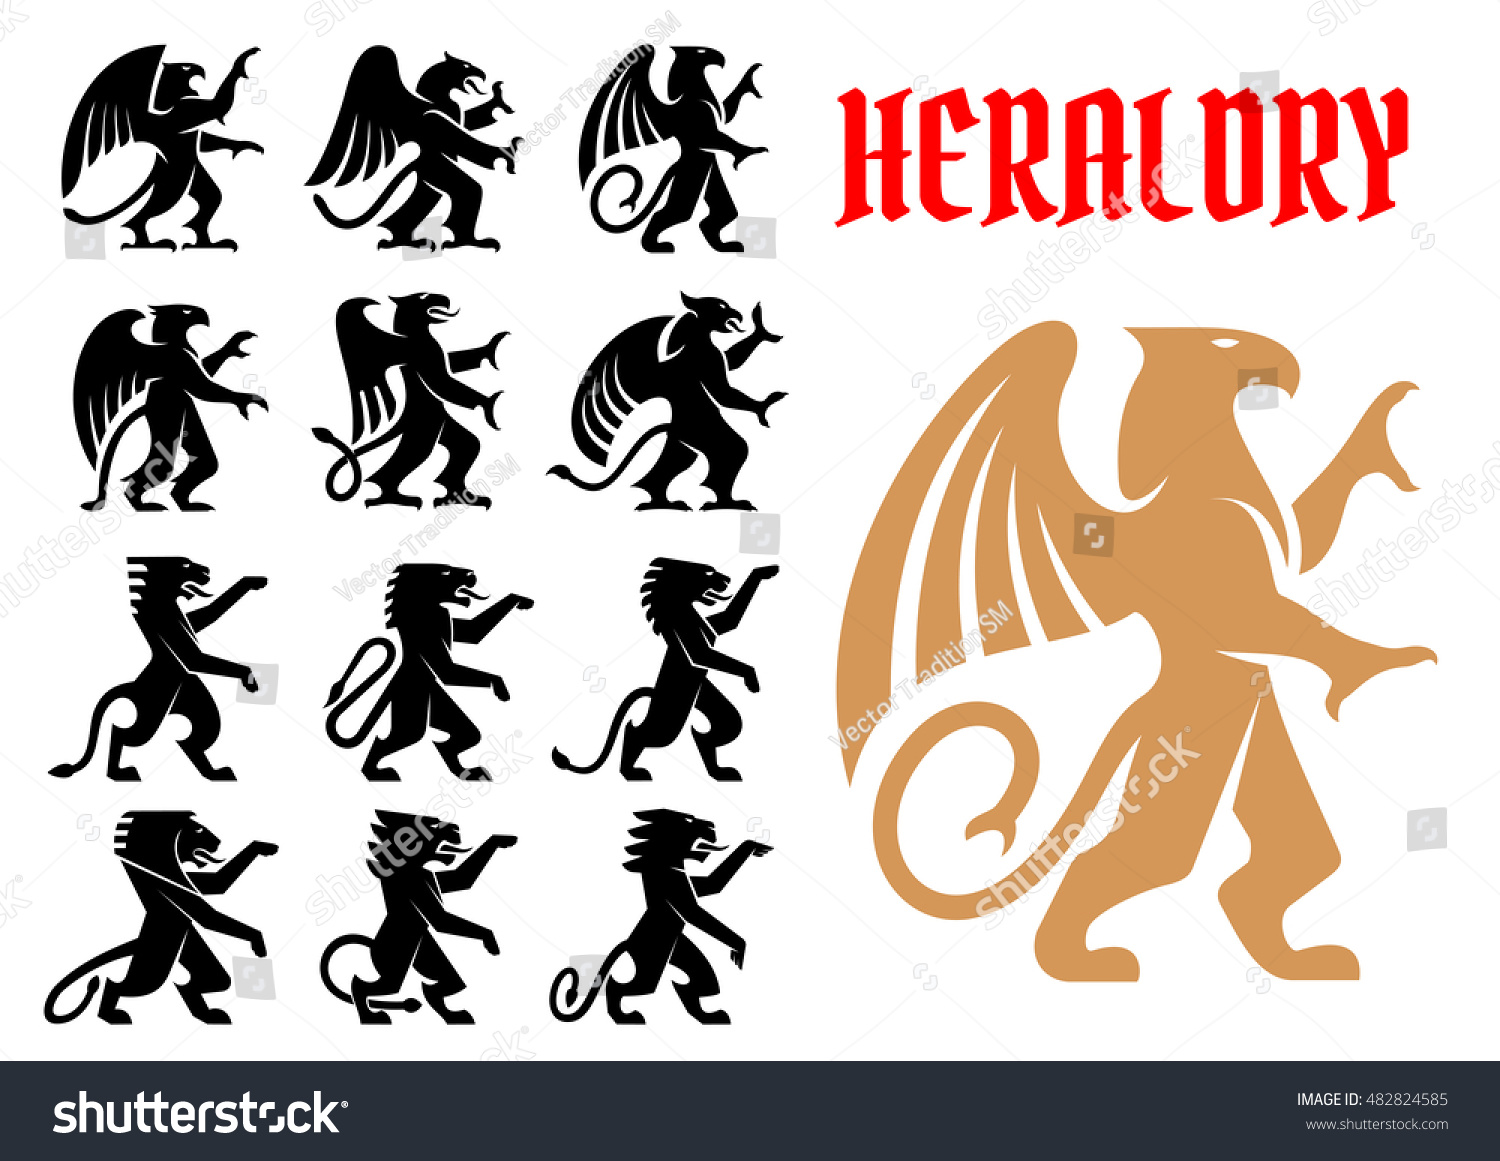 How to breed heraldic dragon - Heraldic Mythical Animals Icons Set Vector Heraldry Emblem Silhouettes Of Griffin Dragon Lion